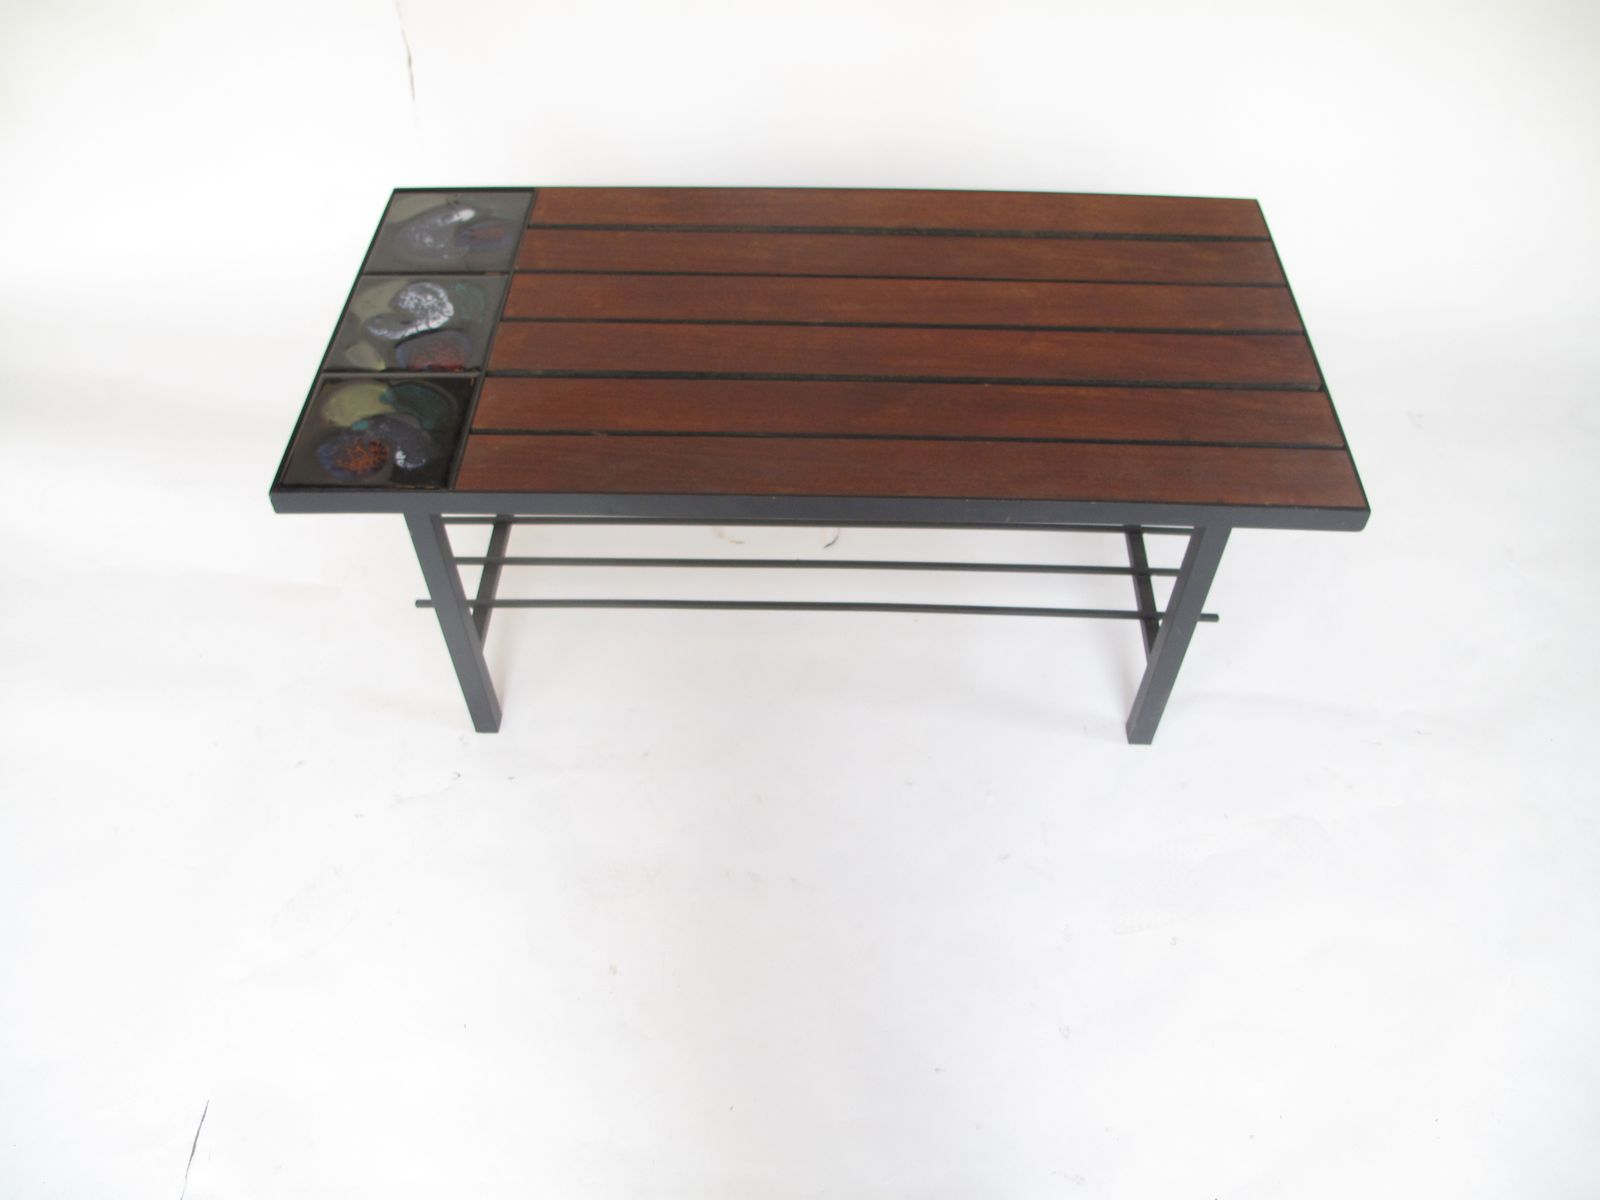 Coffee Table in Wood with Ceramic Tiles, 1960s for sale at